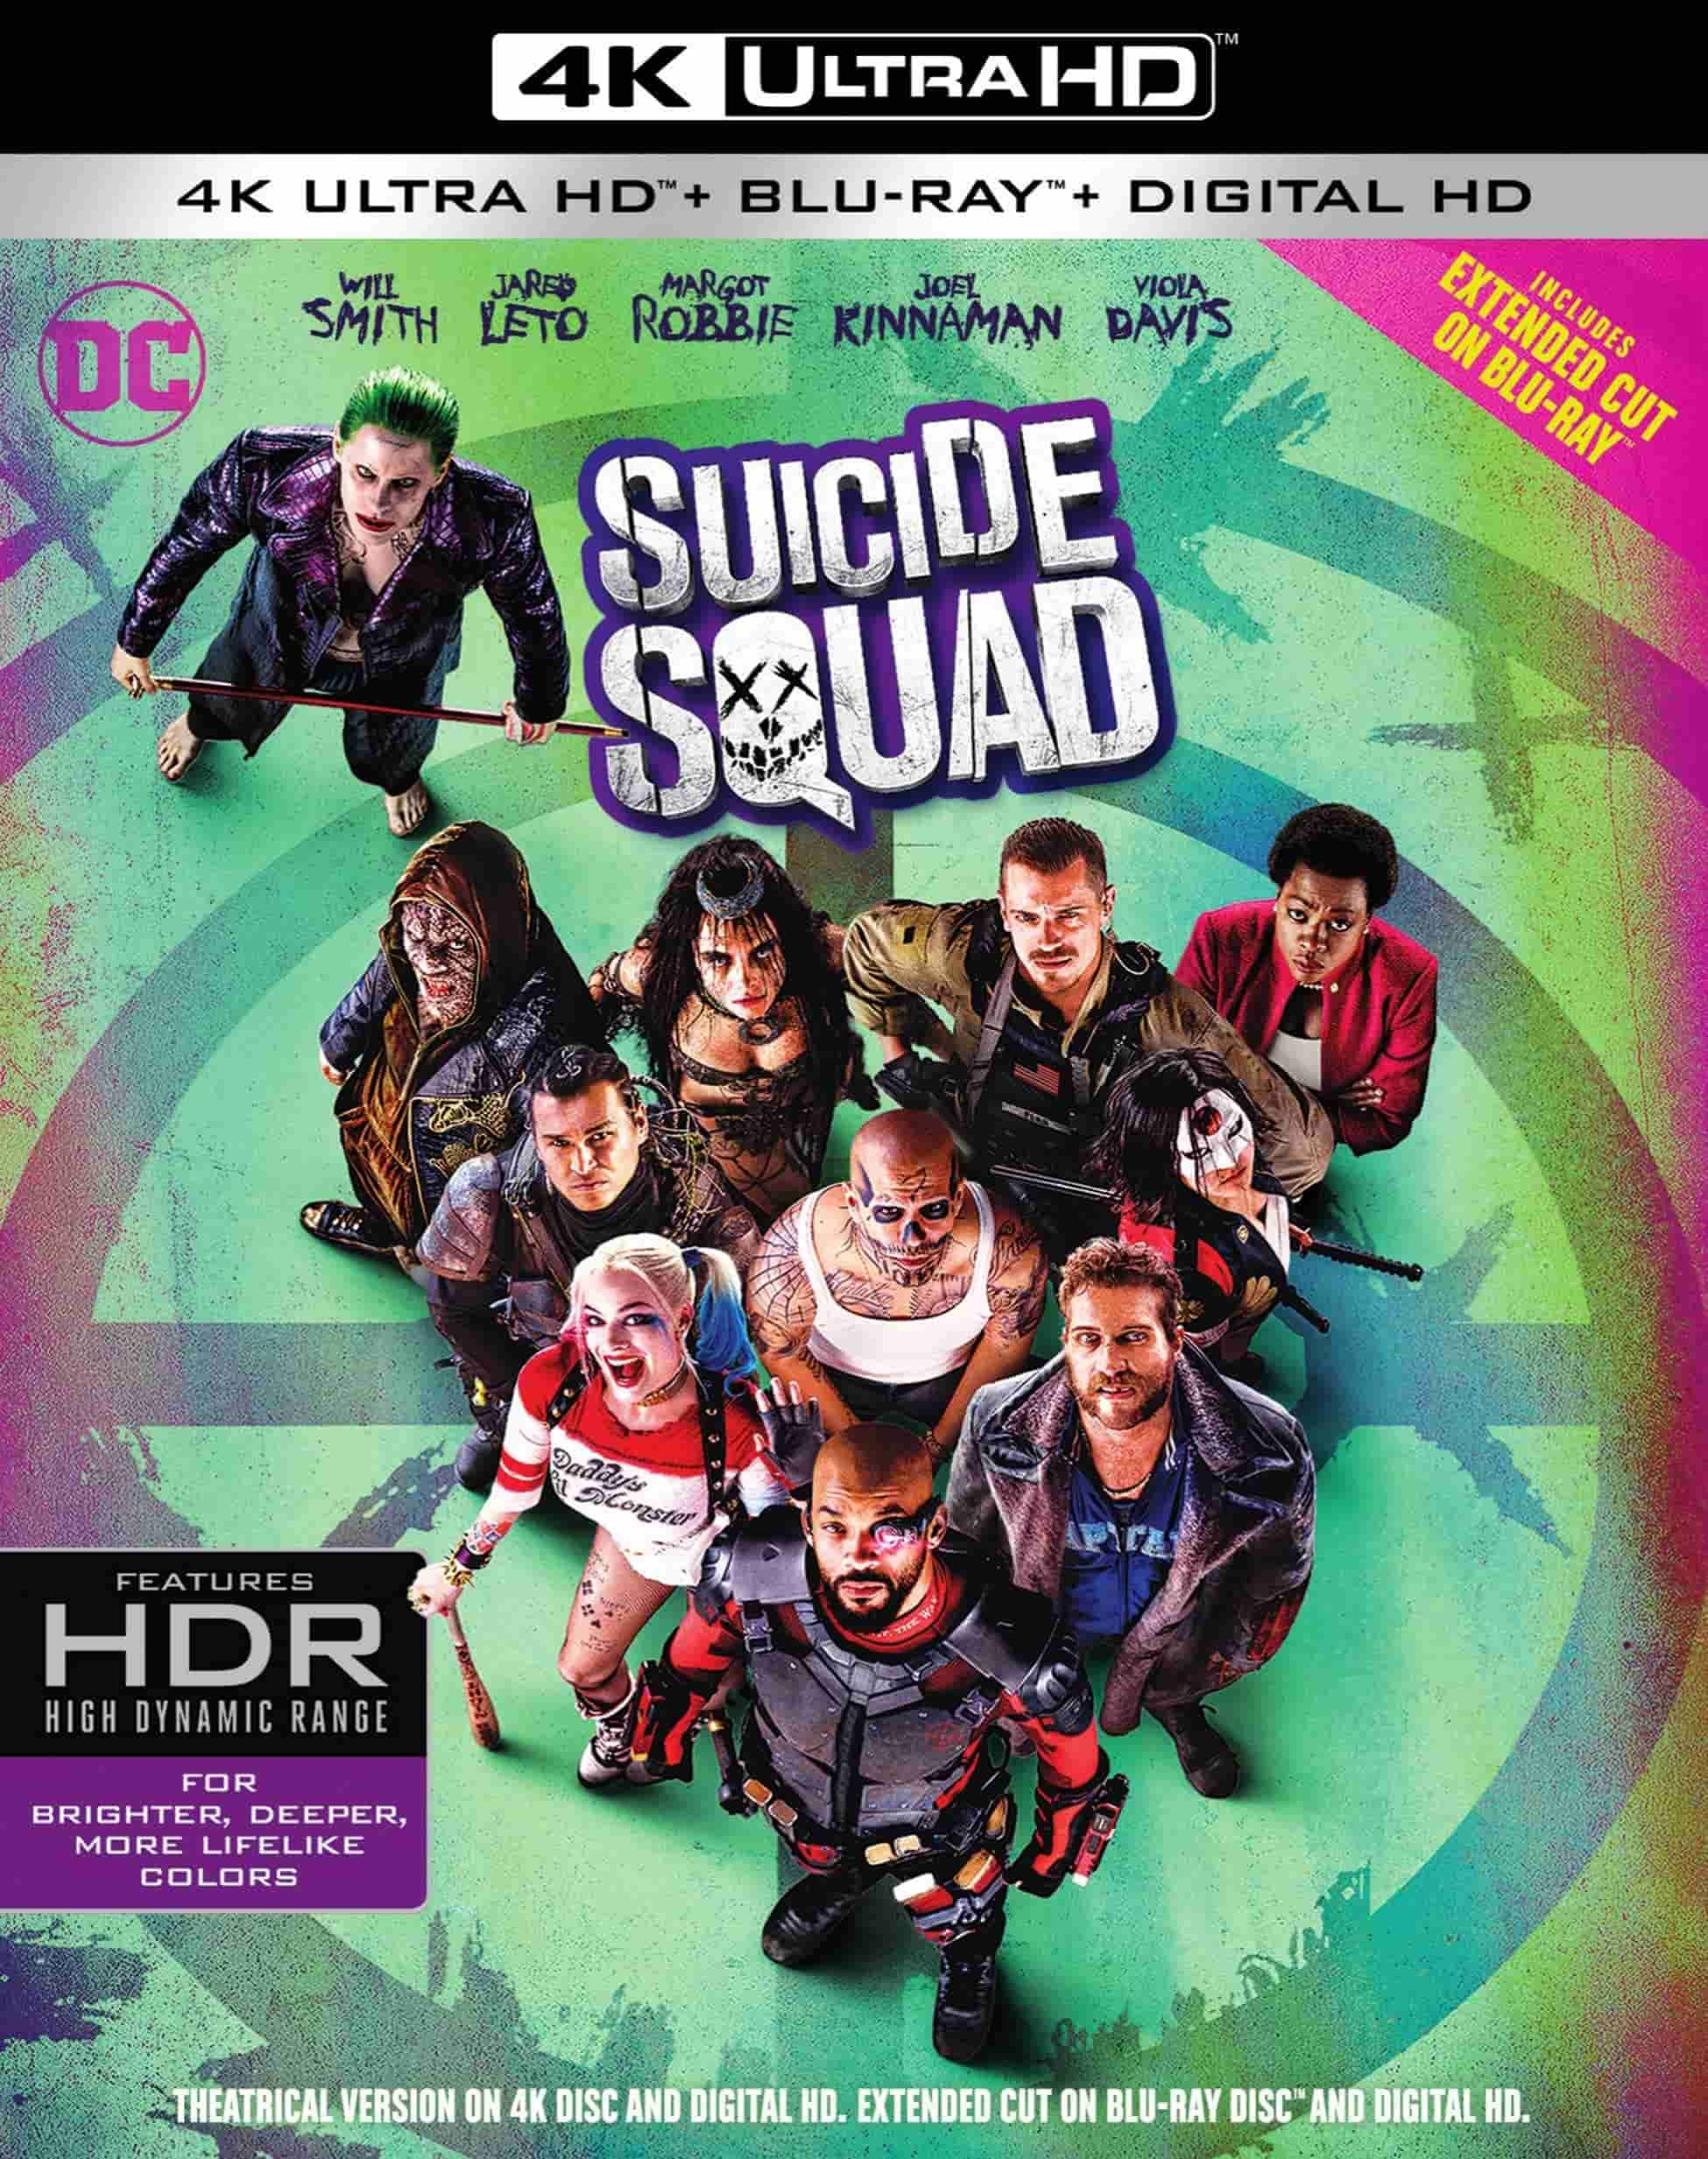 Suicide Squad 2016 BluRay REMUX 4k Ultra HD